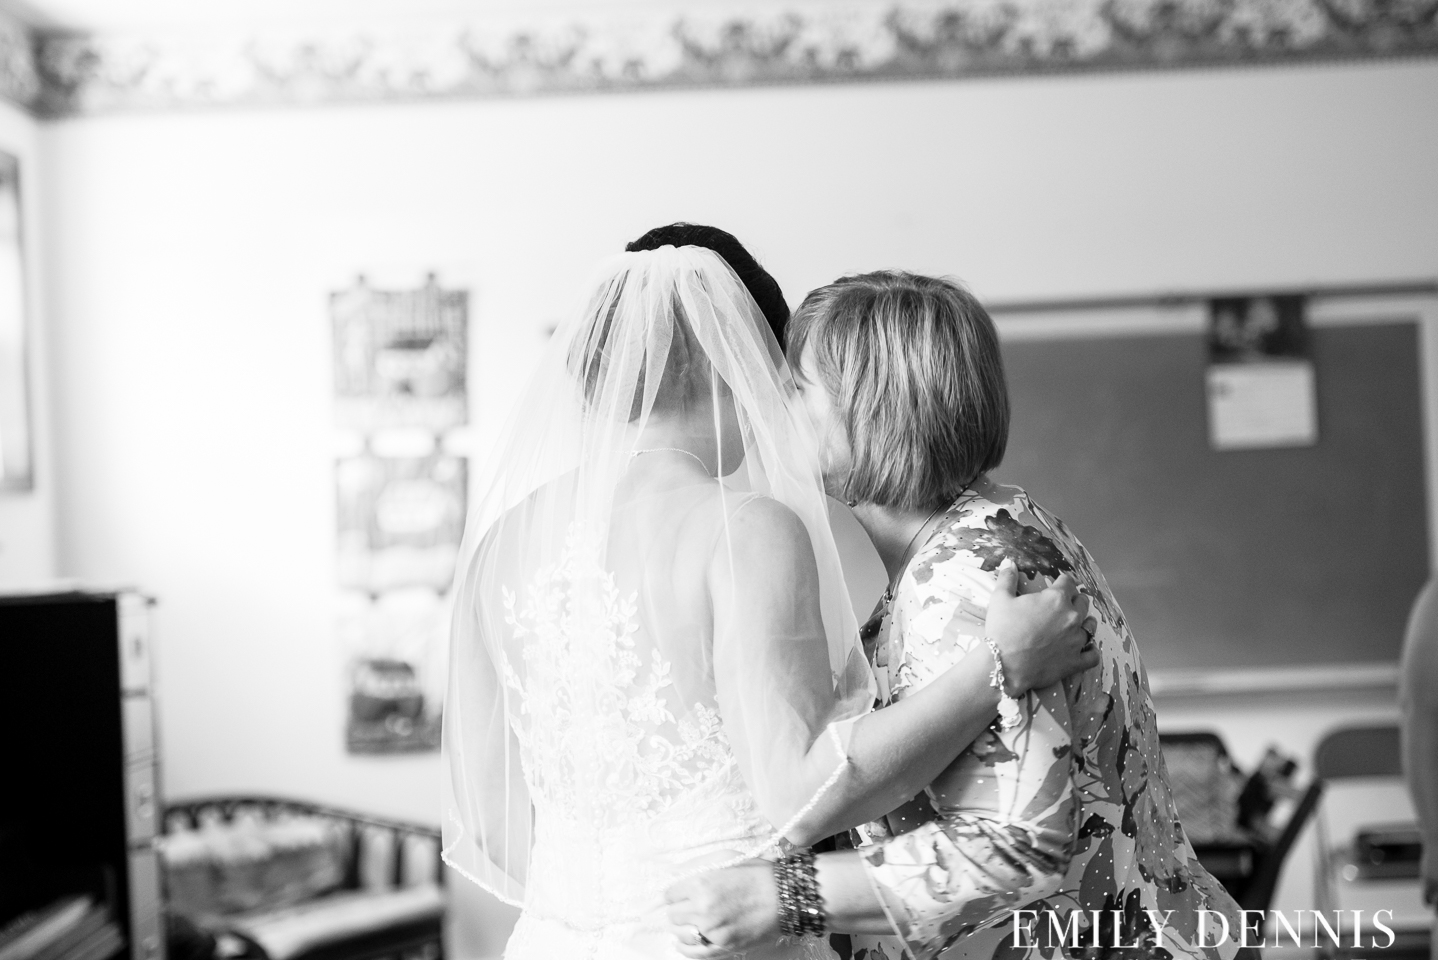 EMILY_DENNIS_PHOTOGRAPHY-63